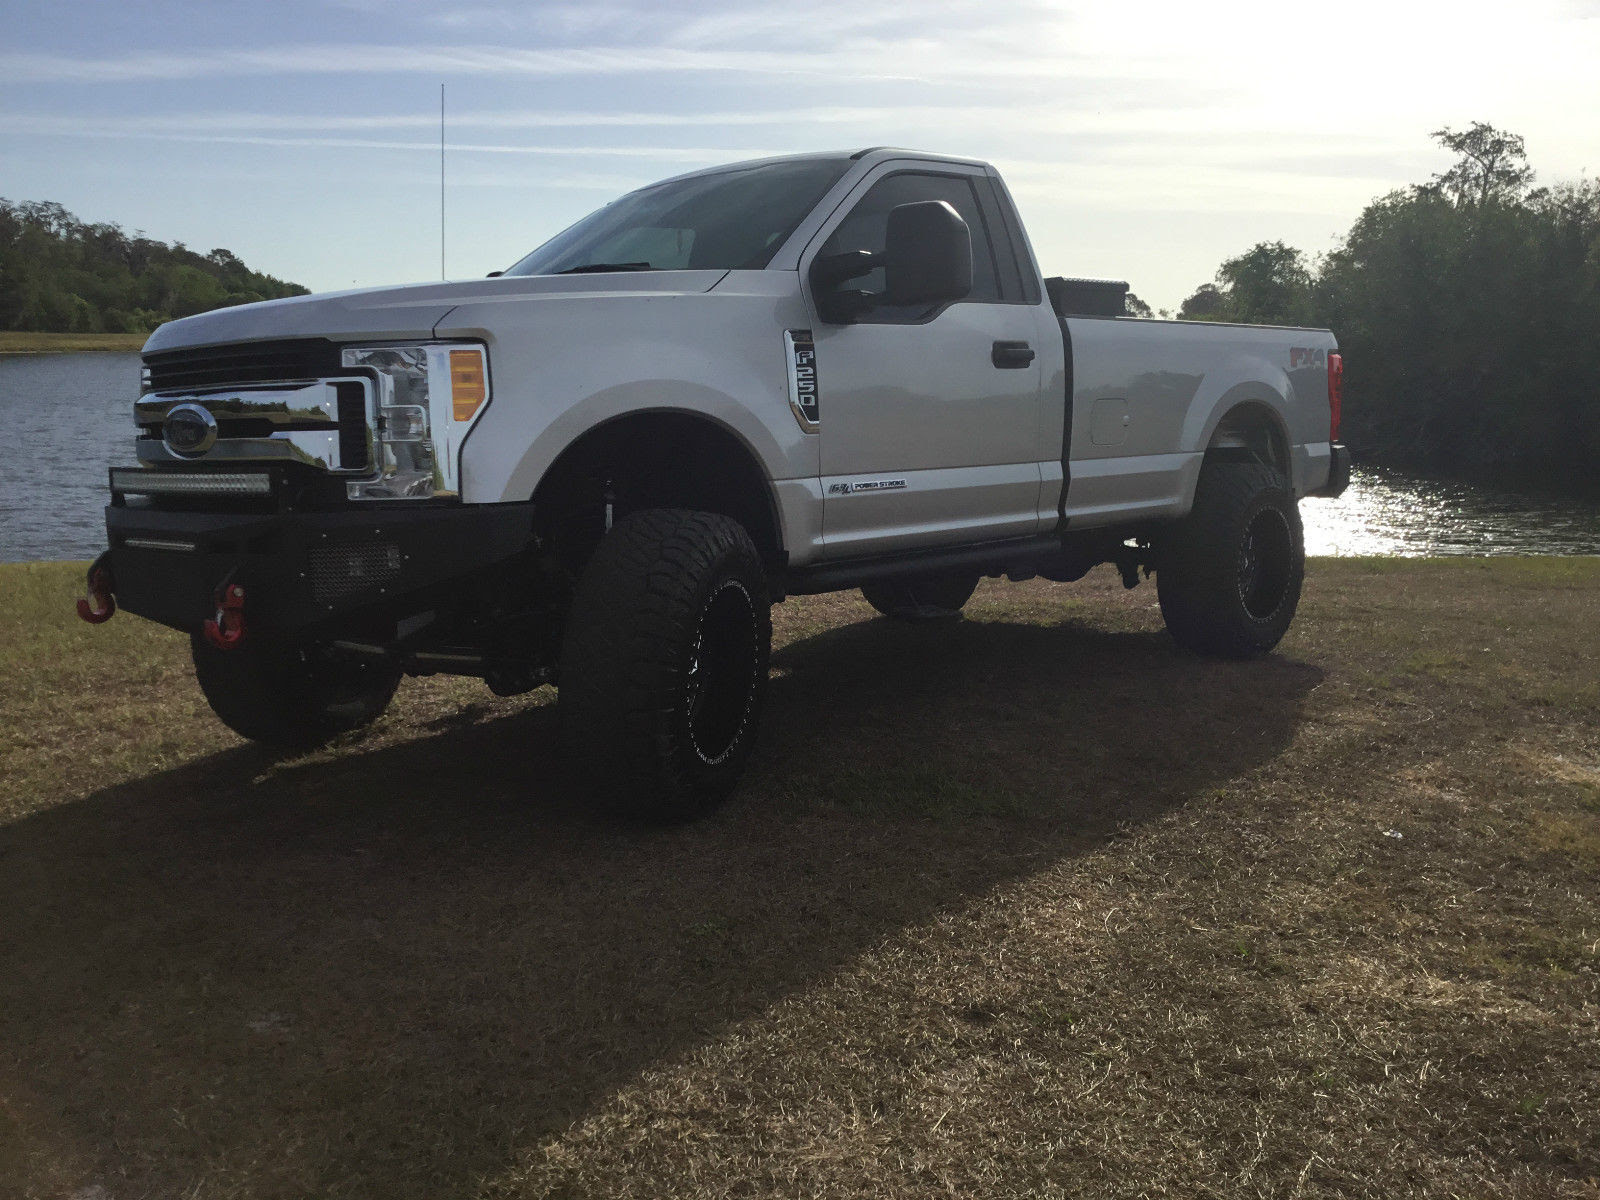 2017 Ford F 250 Platinum For Sale >> 2015 Ford F 250 Platinum 4x4 Monster Truck Immaculate For Sale